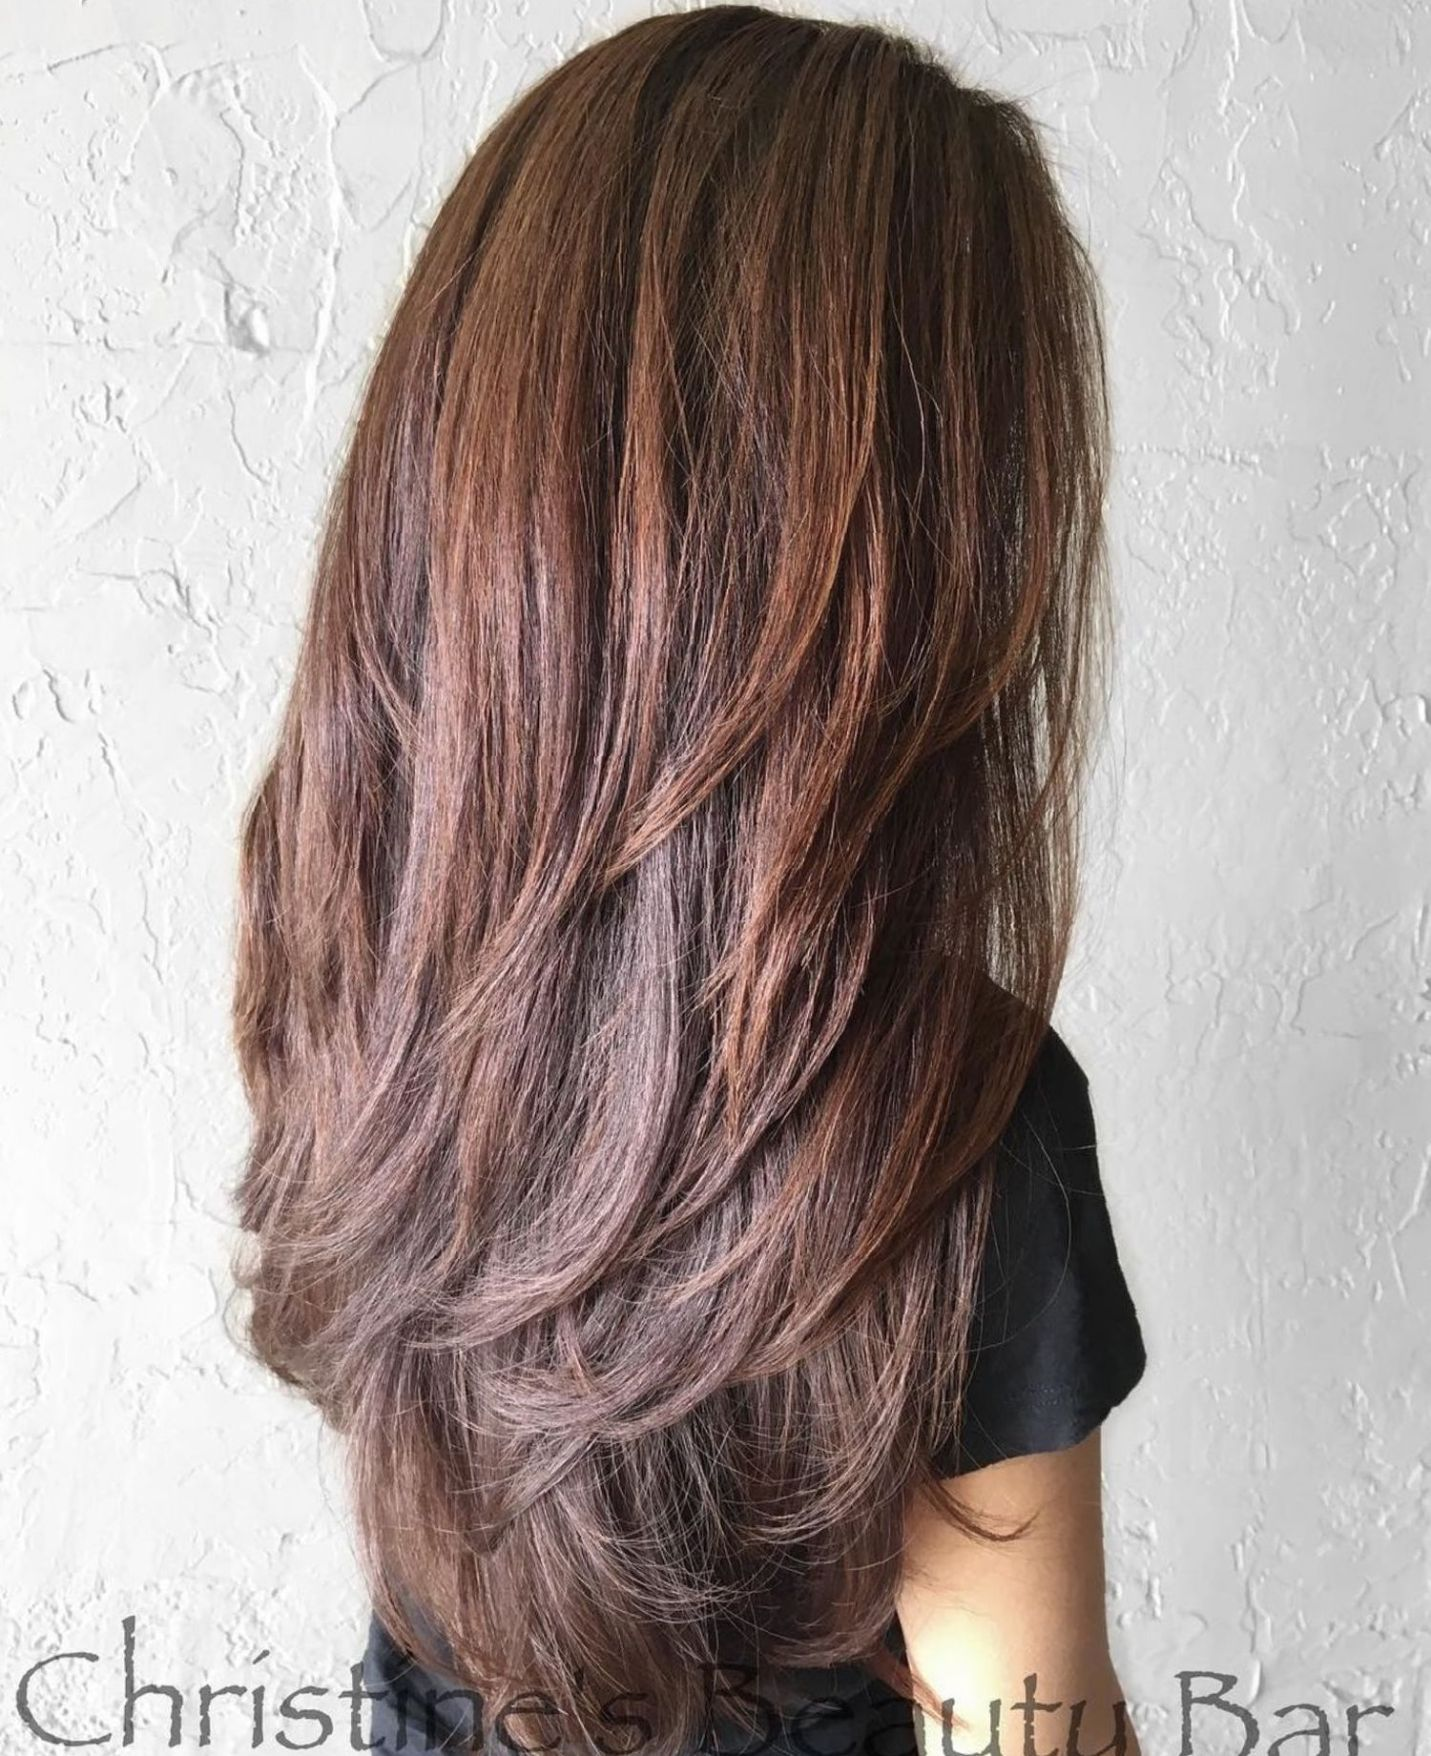 Pin On Hair Styles For Long Hair